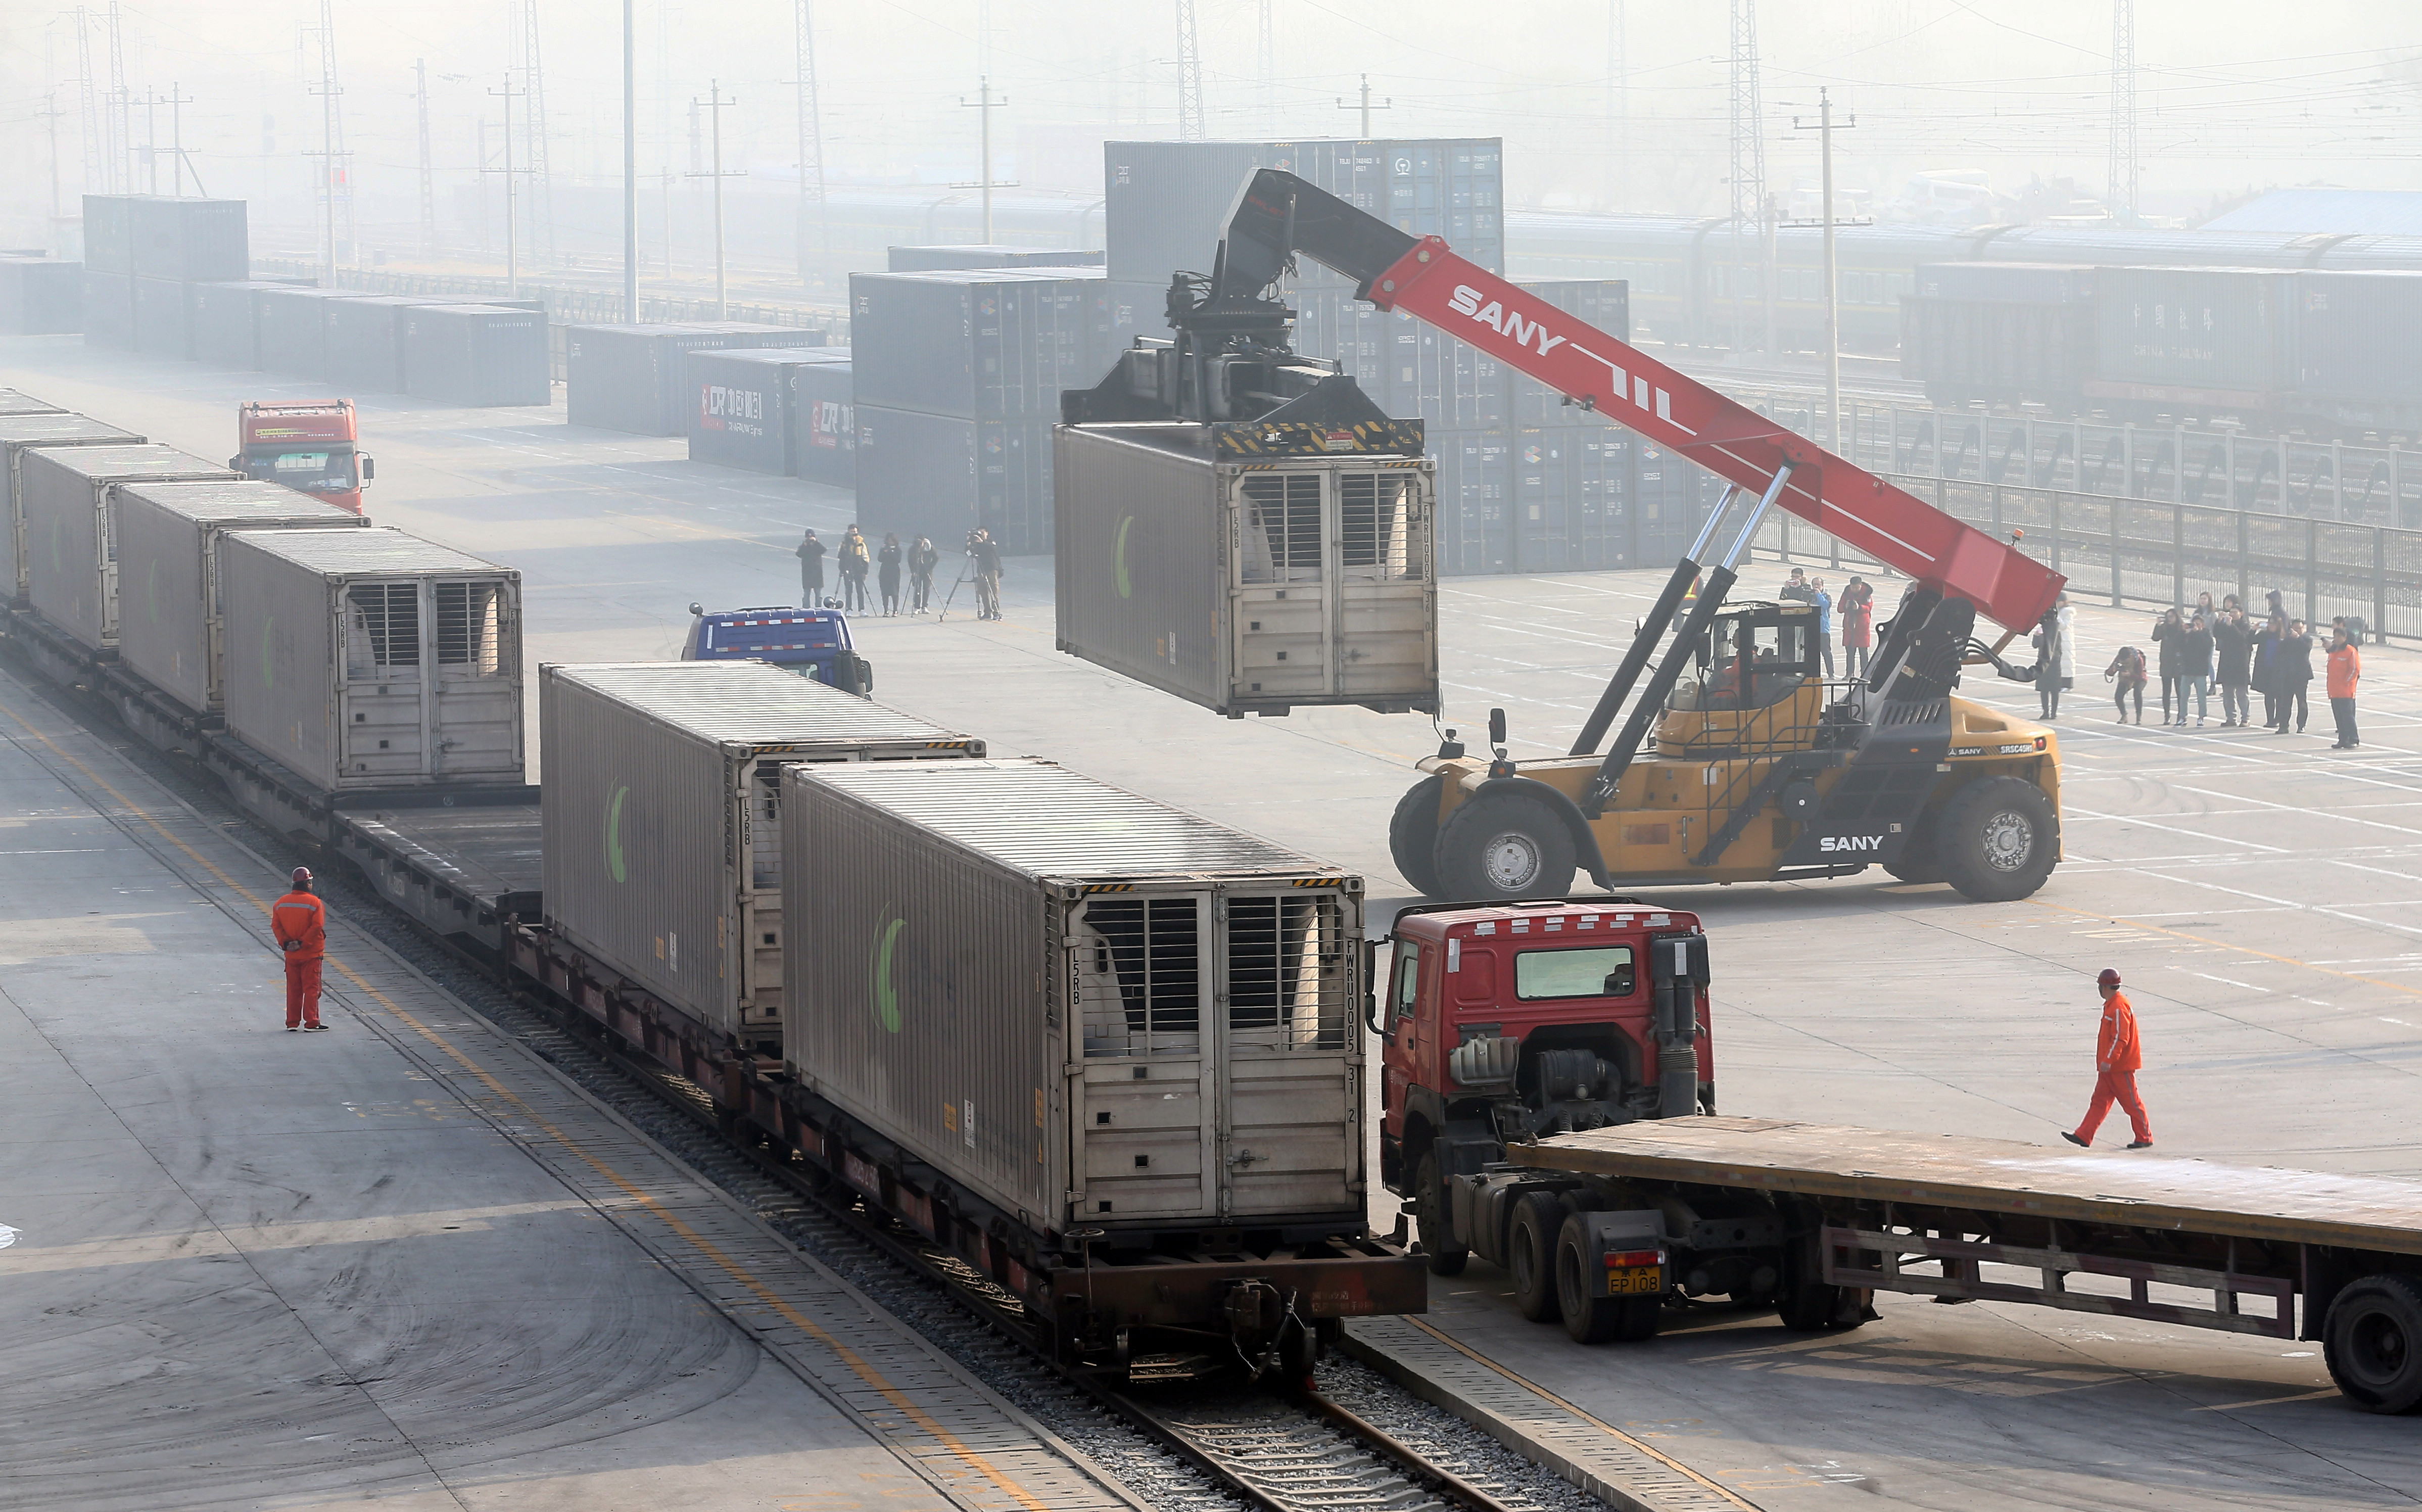 Workers unload containers from a train at Dahongmen Railway Station in Beijing, China January 14, 2019. Picture taken January 14, 2019. China Daily via REUTERS   ATTENTION EDITORS - THIS IMAGE WAS PROVIDED BY A THIRD PARTY. CHINA OUT. NO COMMERCIAL OR EDITORIAL SALES IN CHINA. - RC1938C2F620